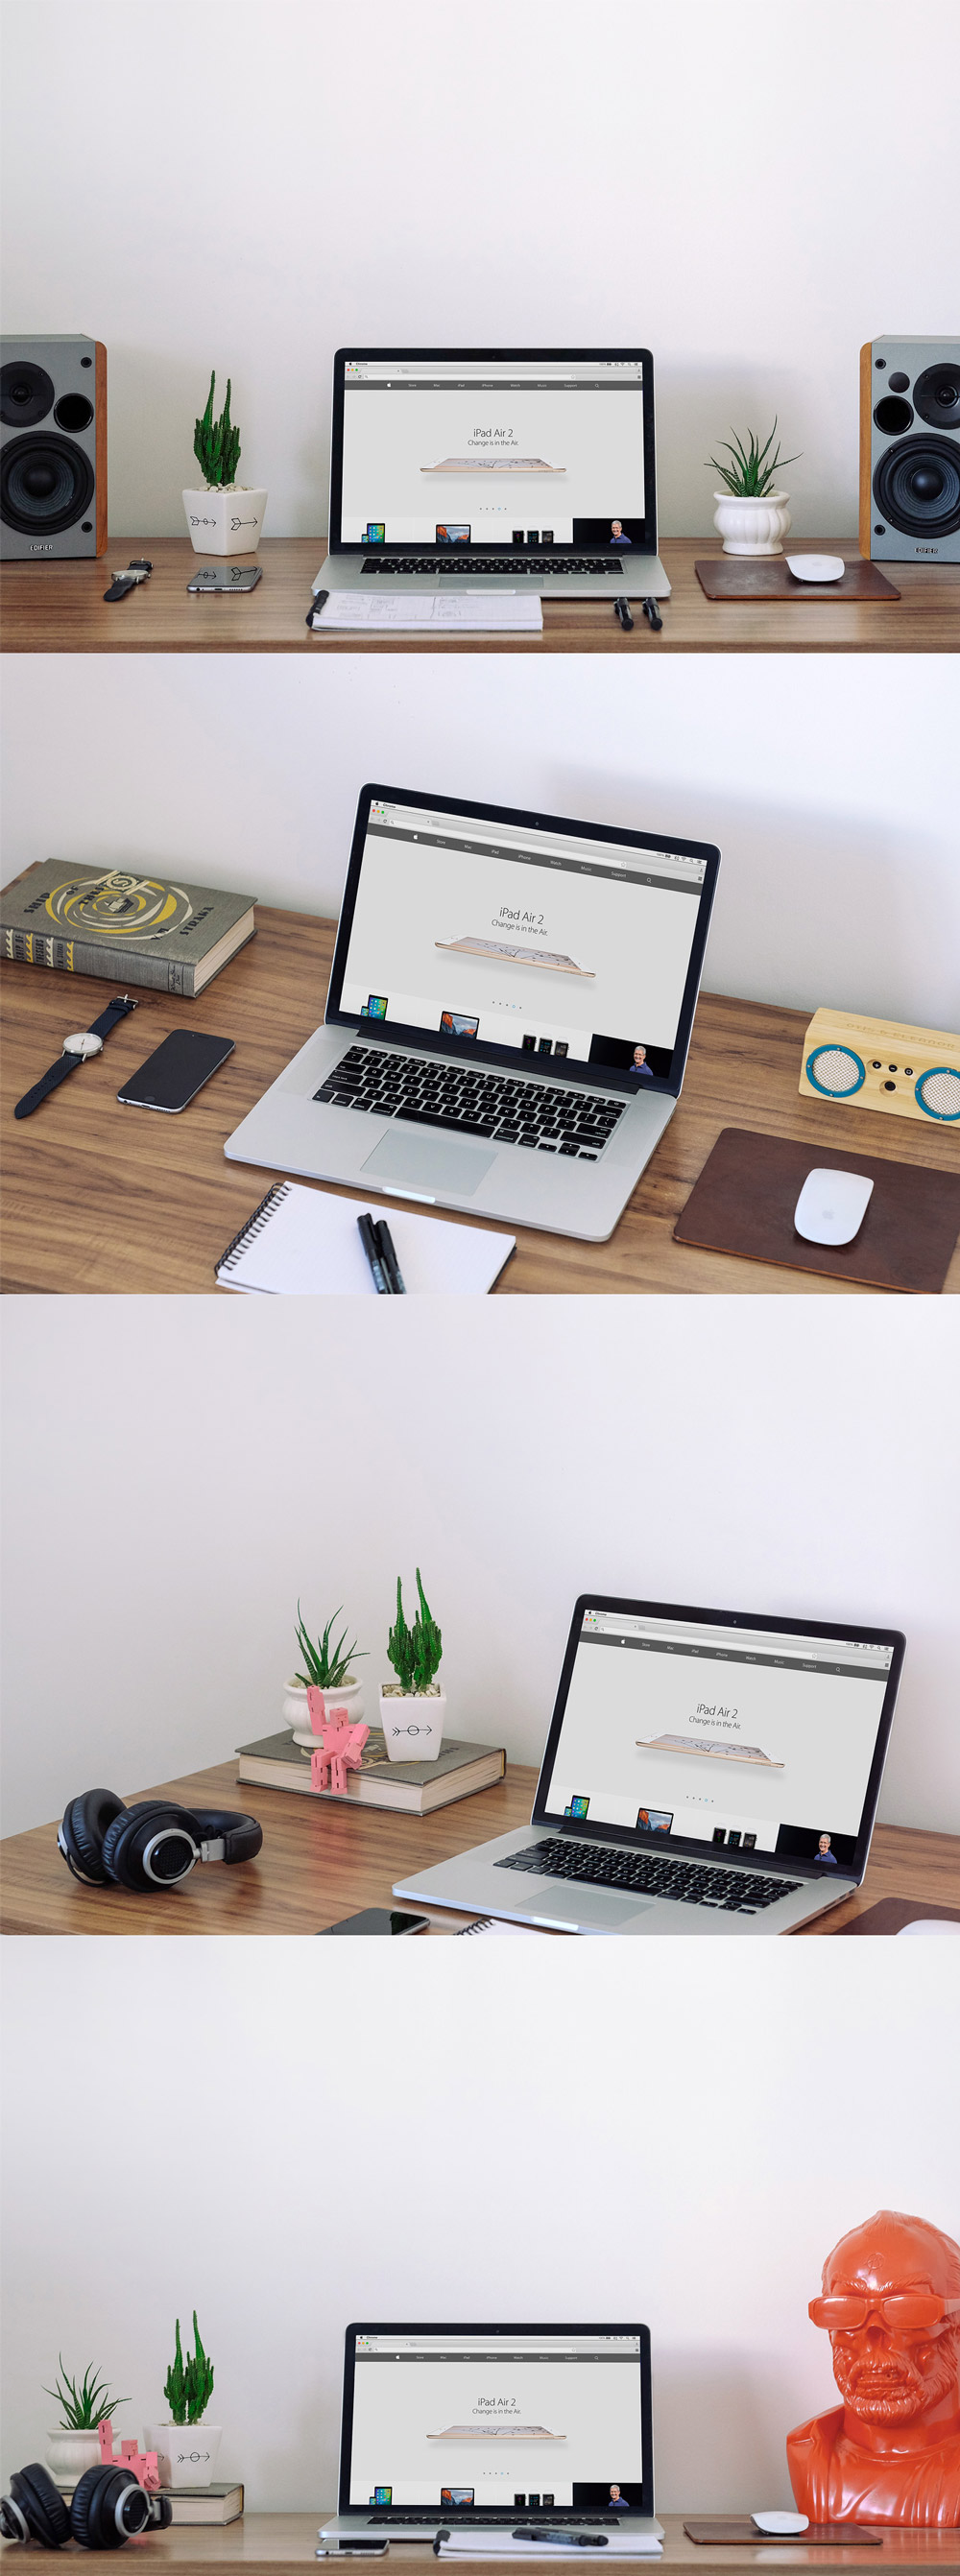 http://www.graphicsfuel.com/wp-content/uploads/2015/06/free-macbook-workspace-all.jpg